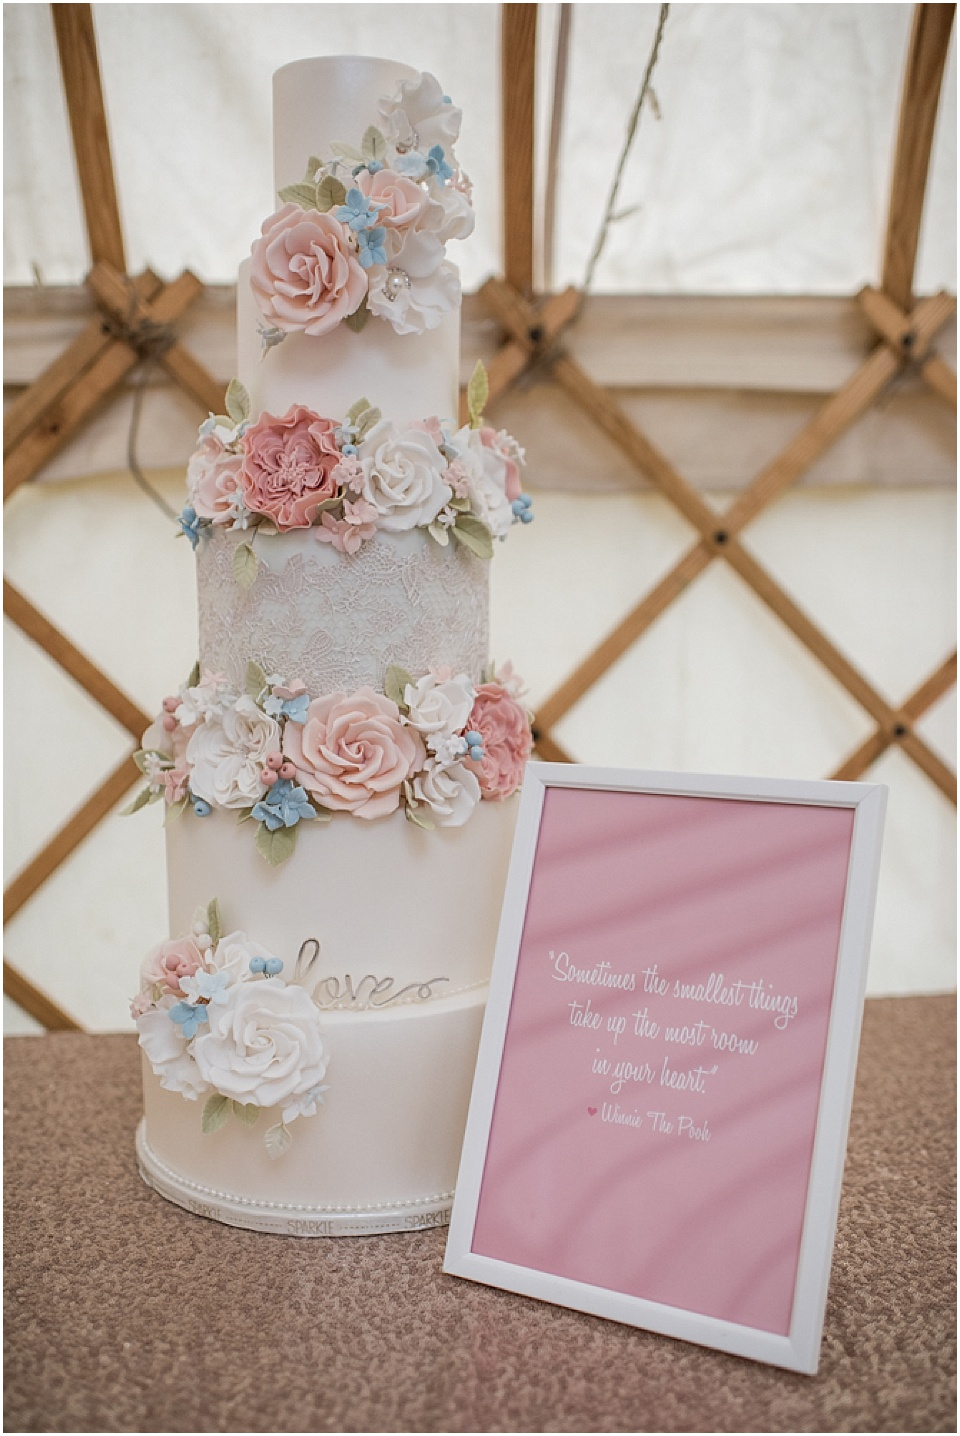 Rose-Quartz-Styled-Shoot-Jane-Beadnell-Photography-www.nubride.com_0395.jpg